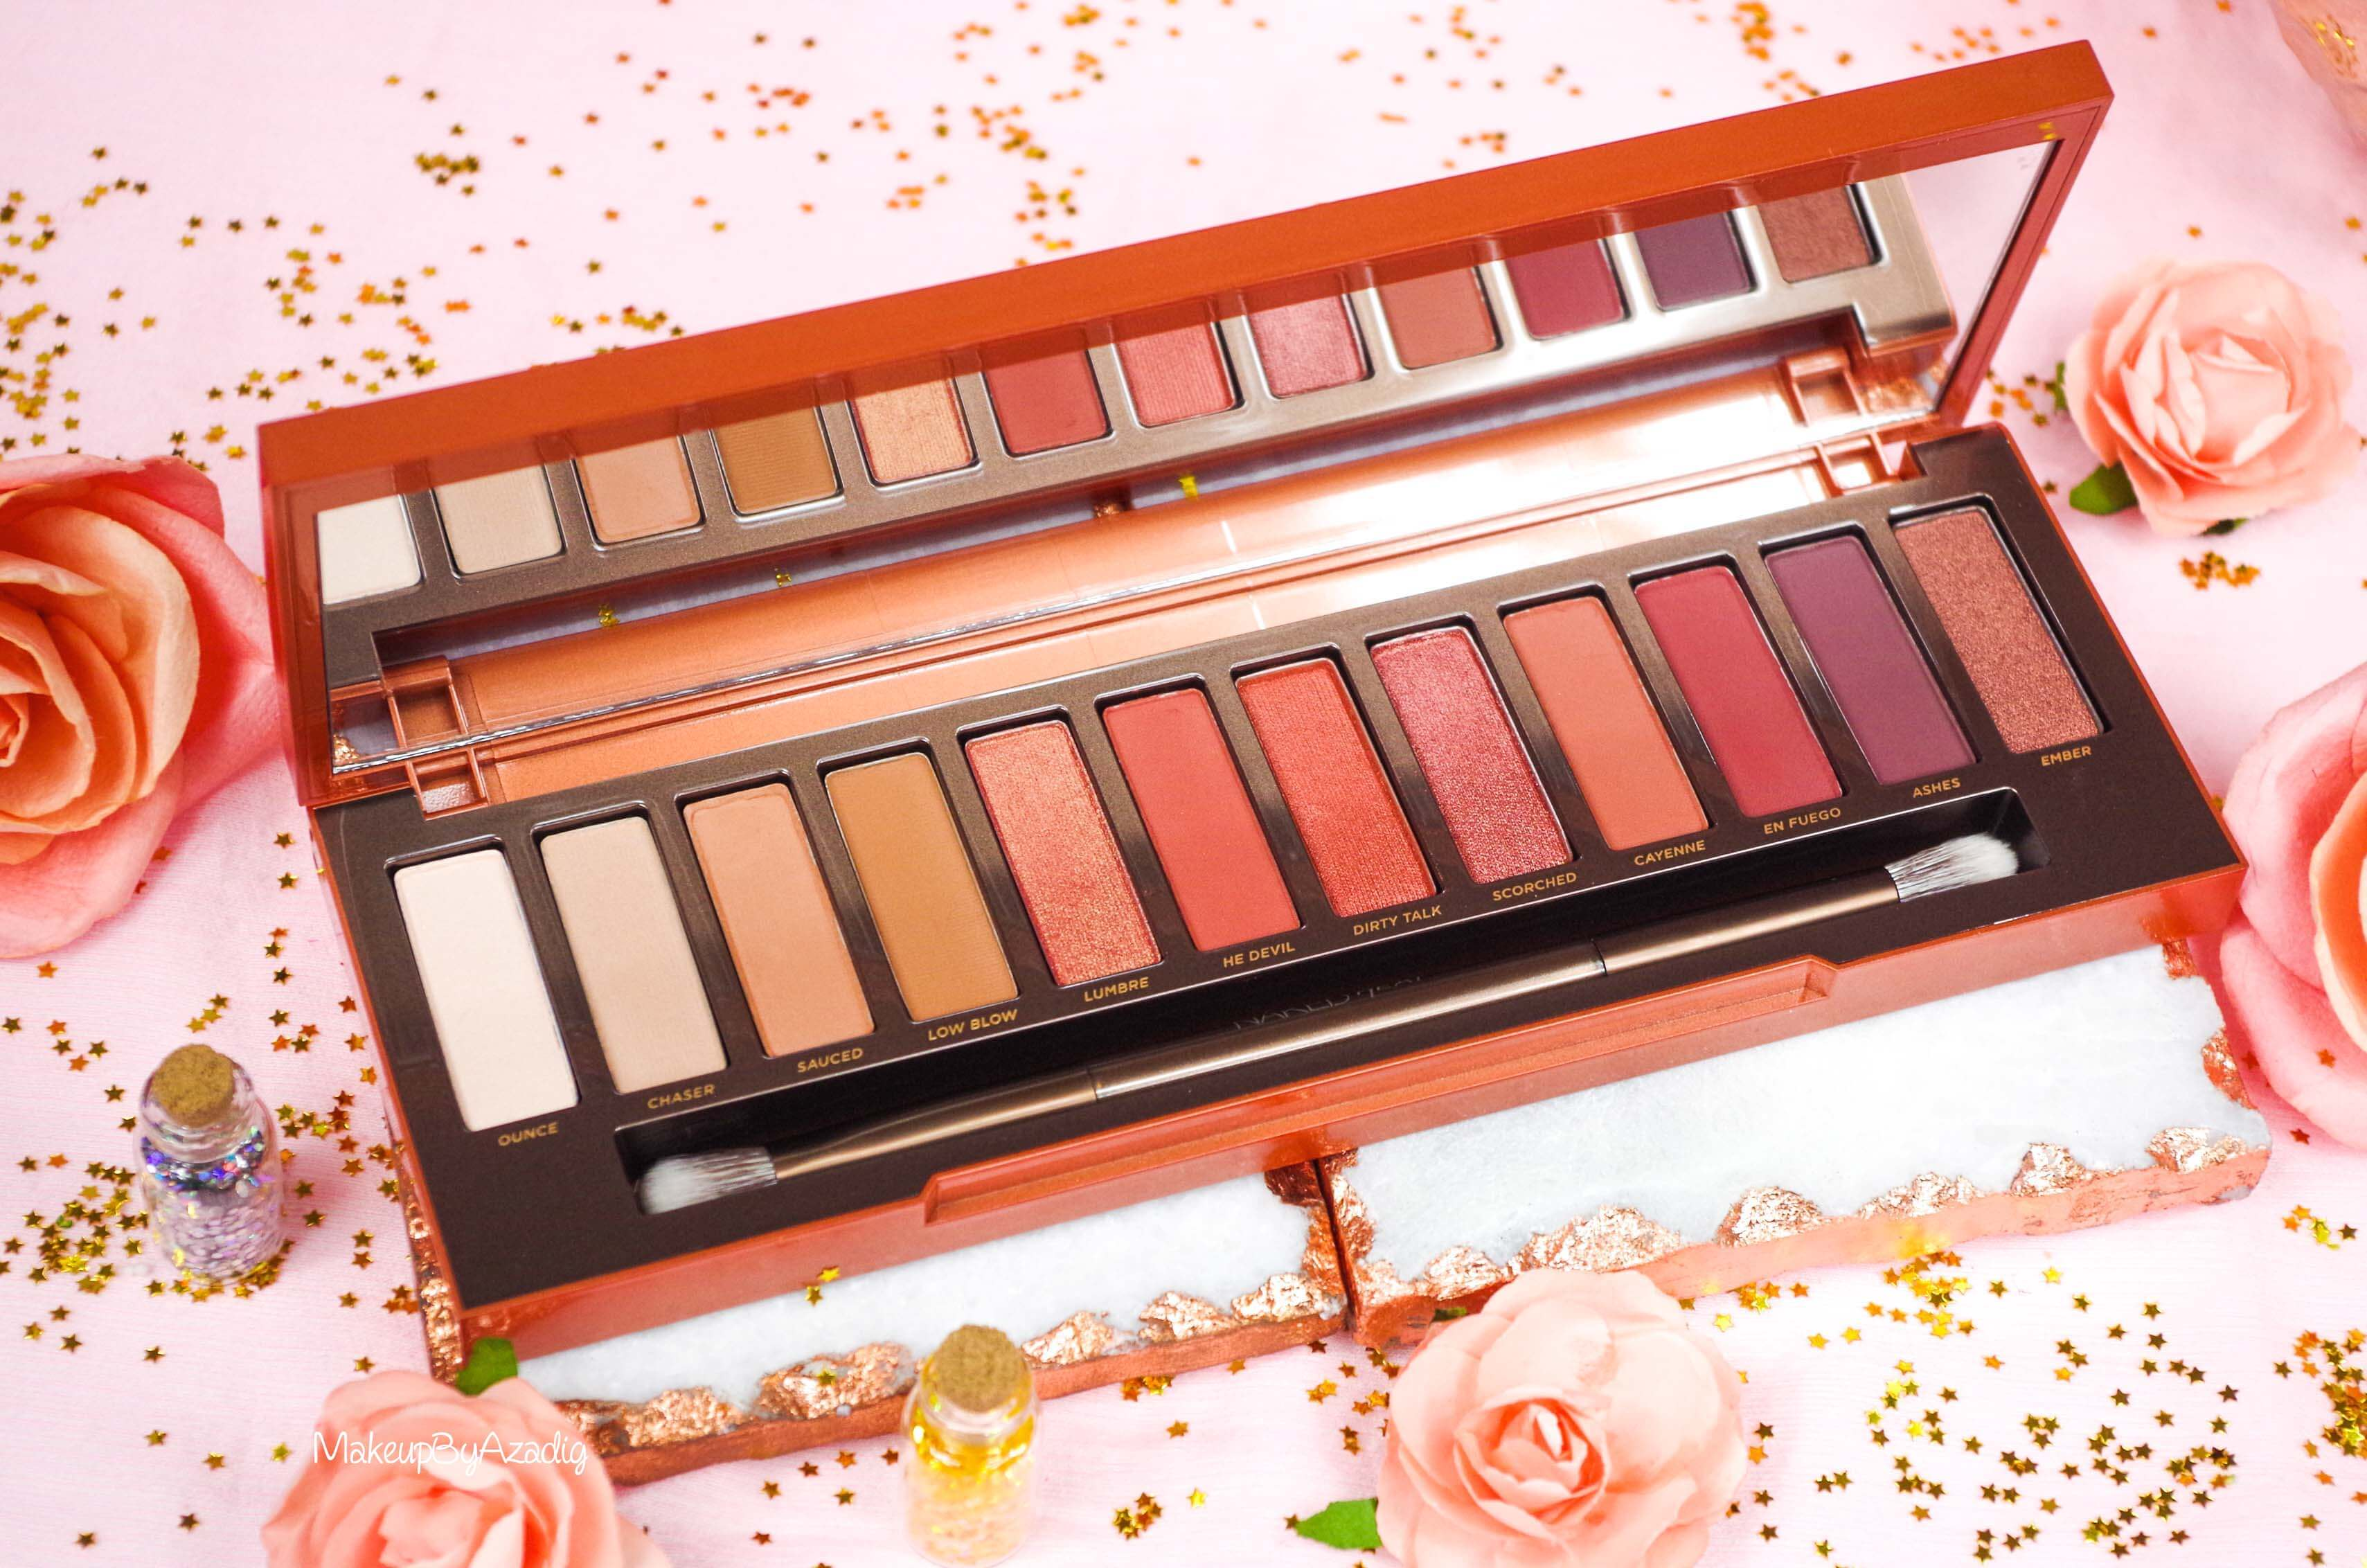 revue-review-nouvelle-palette-naked-heat-urban-decay-sephora-avis-prix-france-makeupbyazadig-swatch-paris